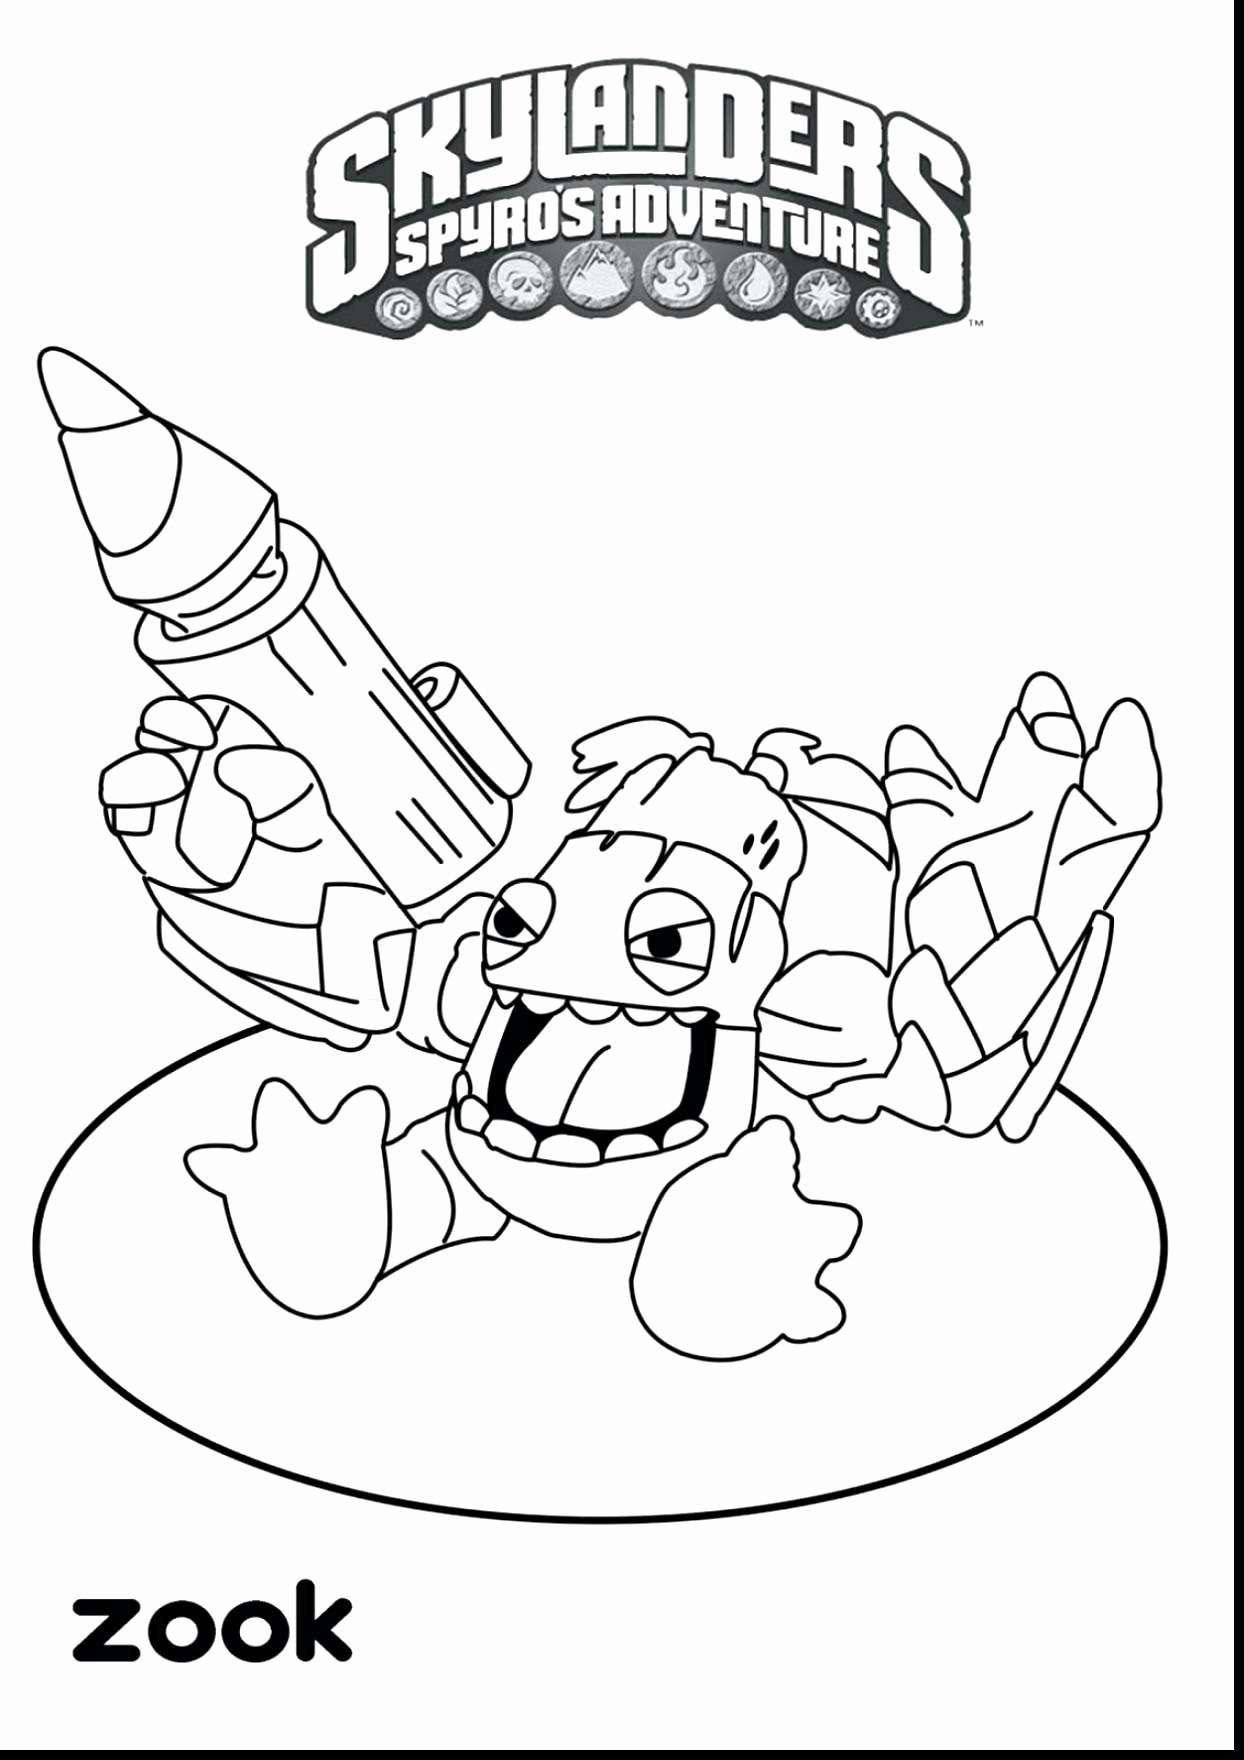 Coloring Pages Daisies  Printable 5g - Free For kids